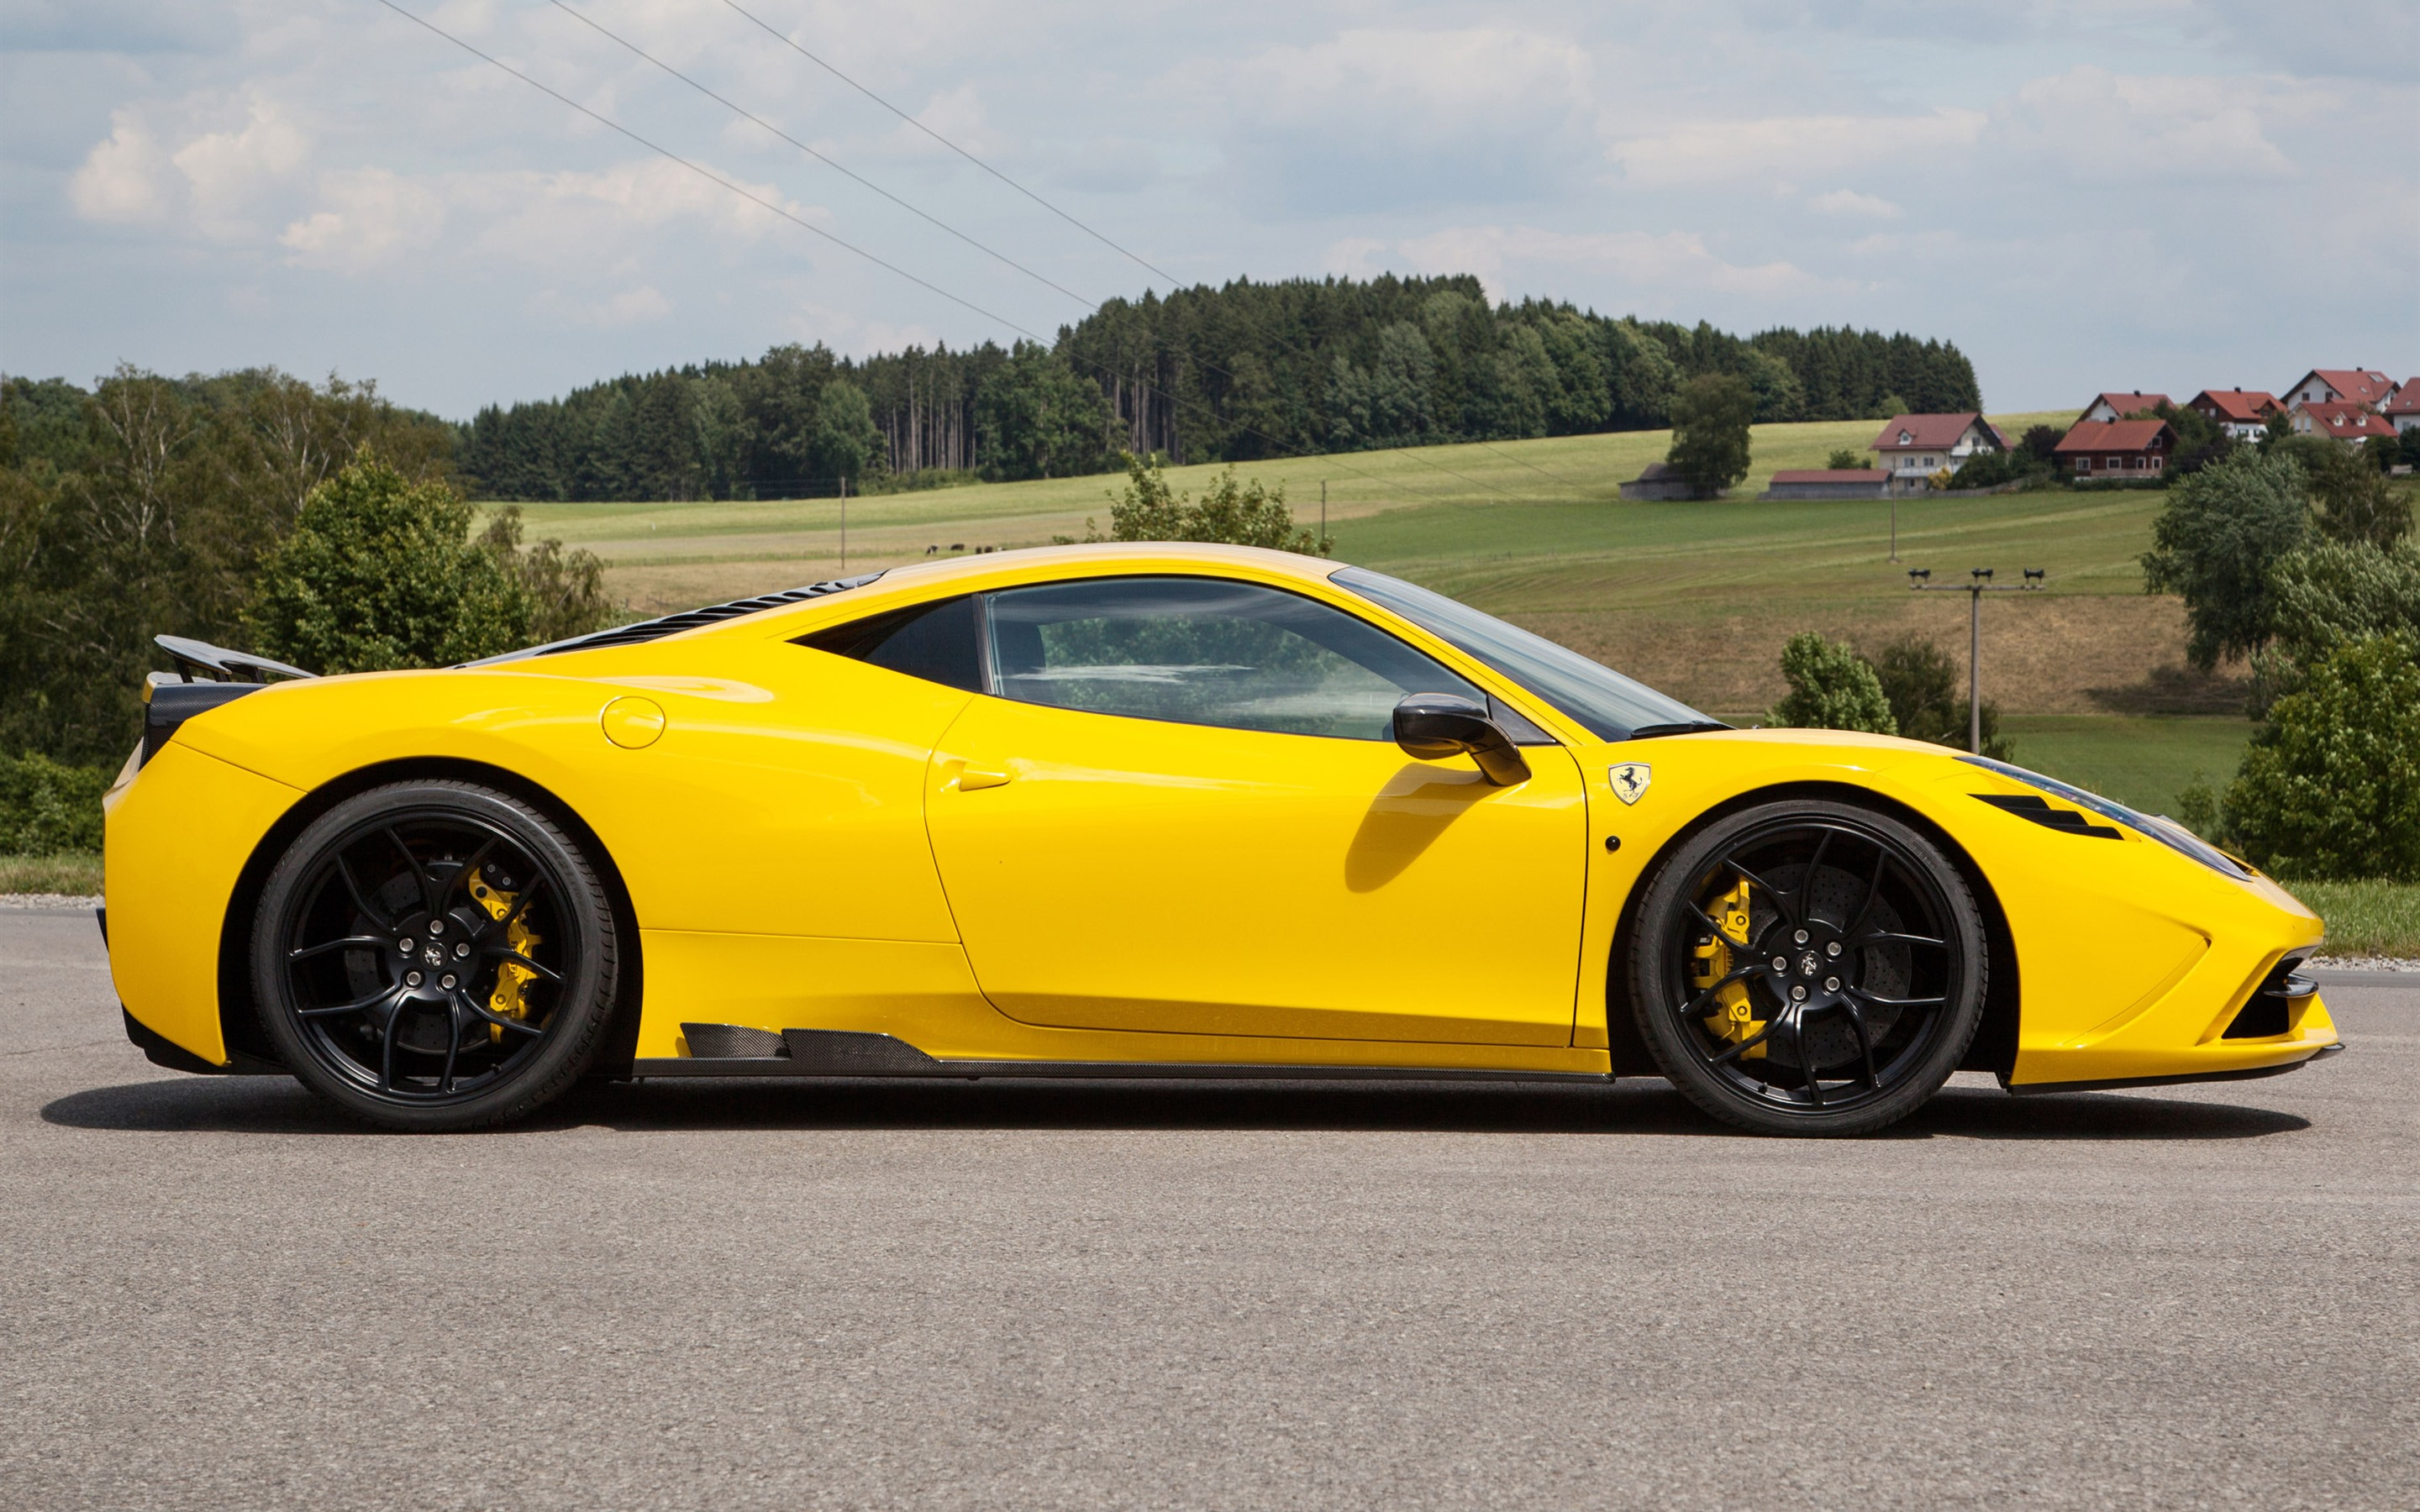 Wallpaper Ferrari 458 Yellow Supercar Side View Countryside 2880x1800 Hd Picture Image